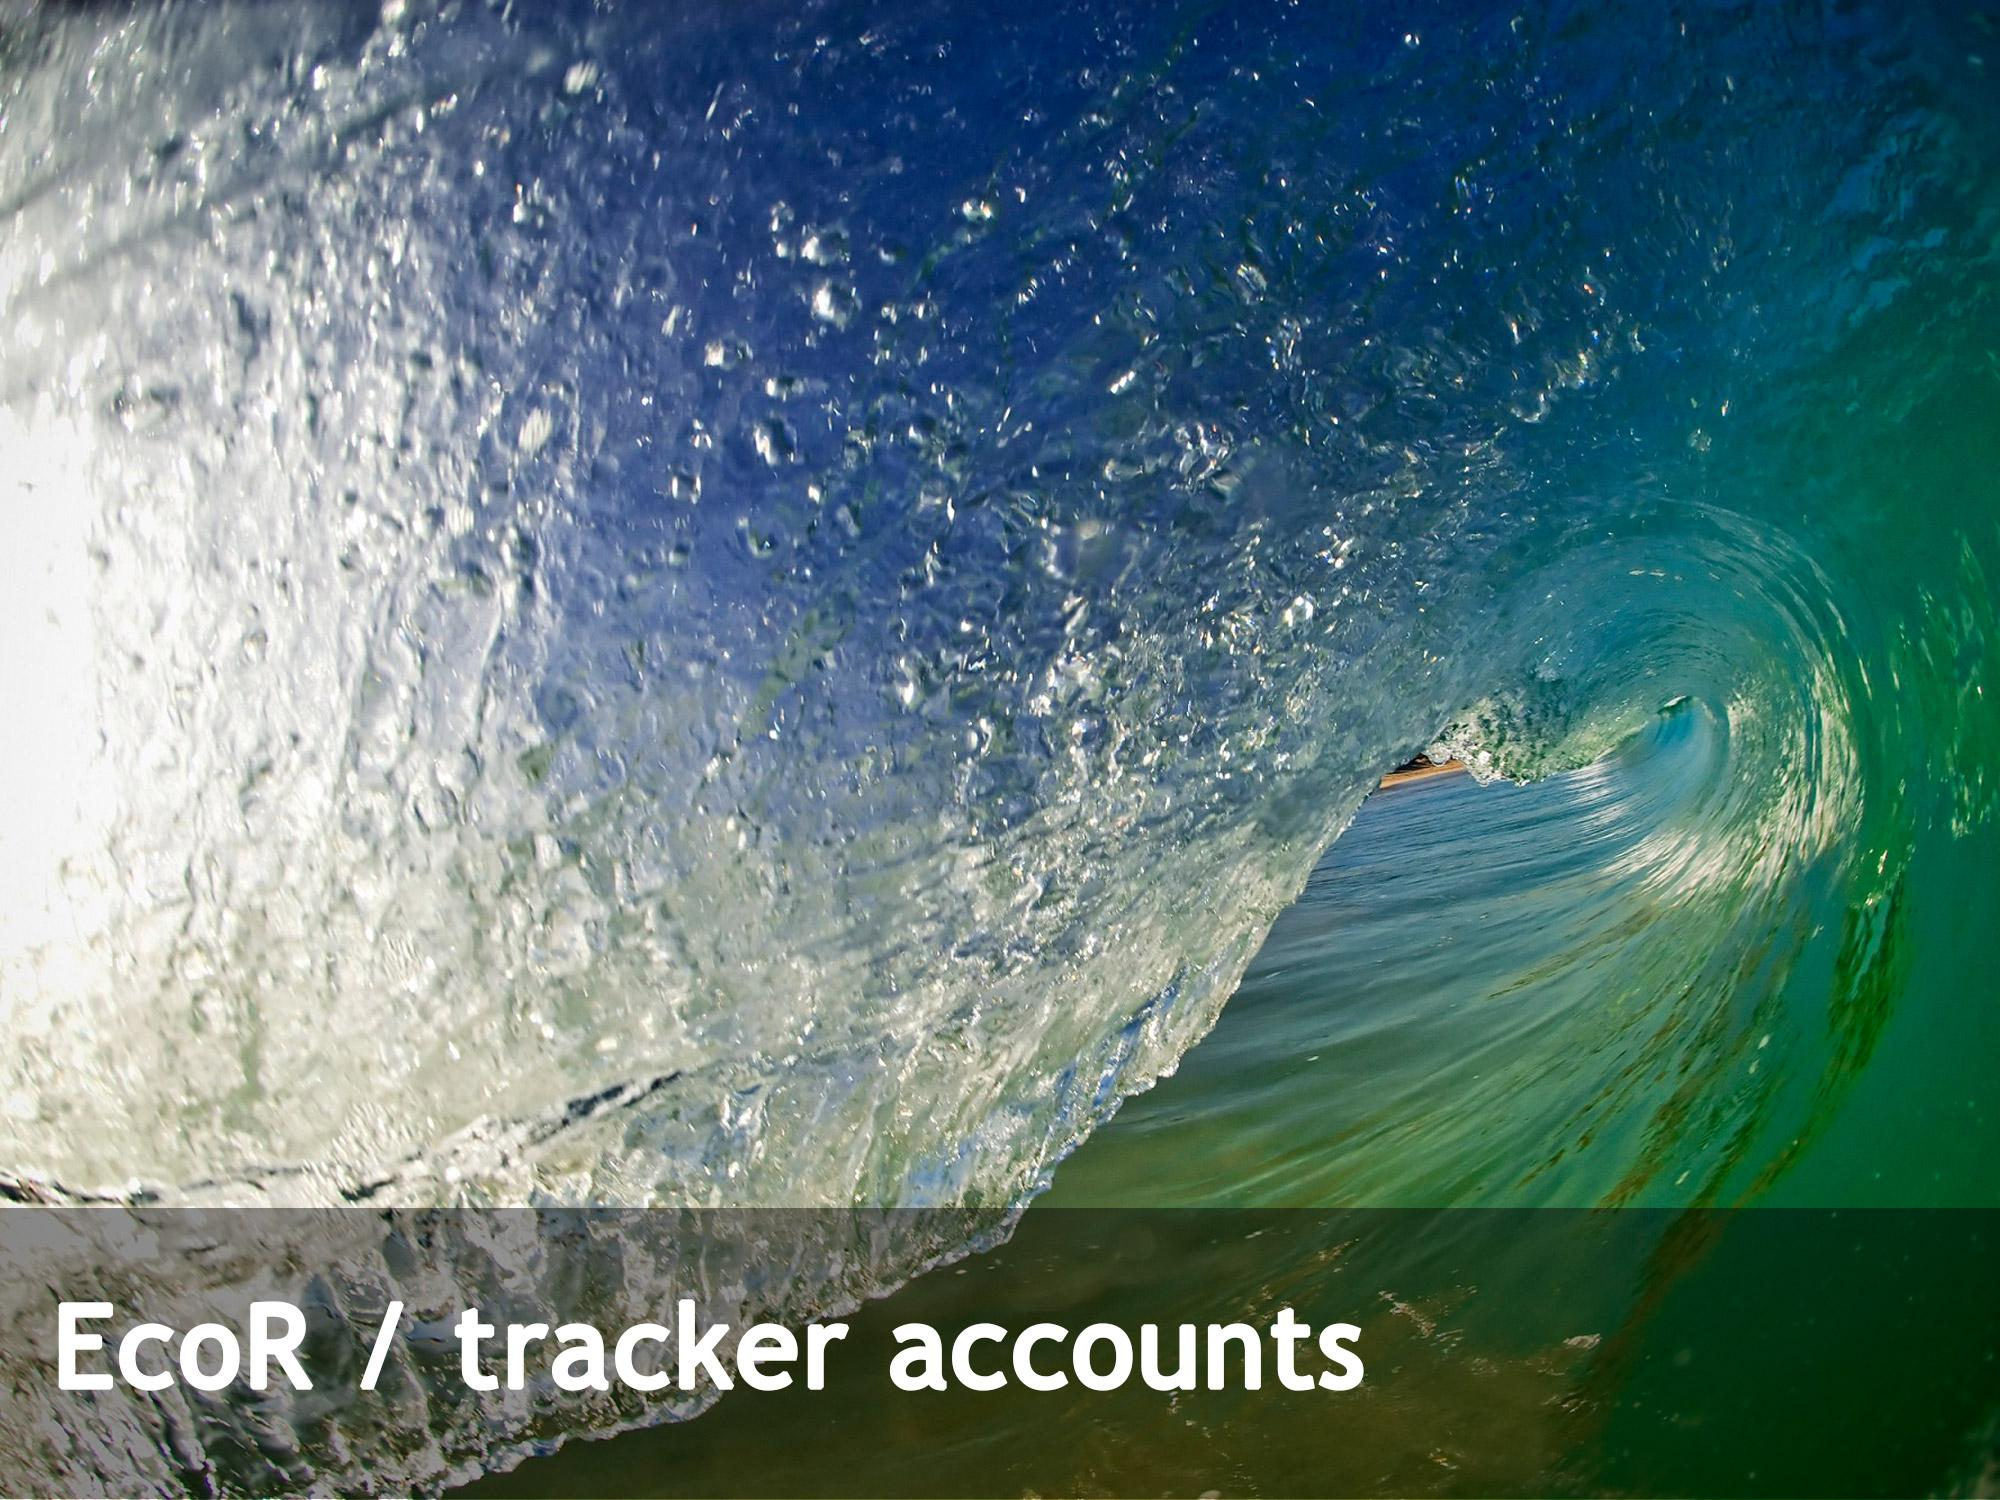 EcoR tracker account